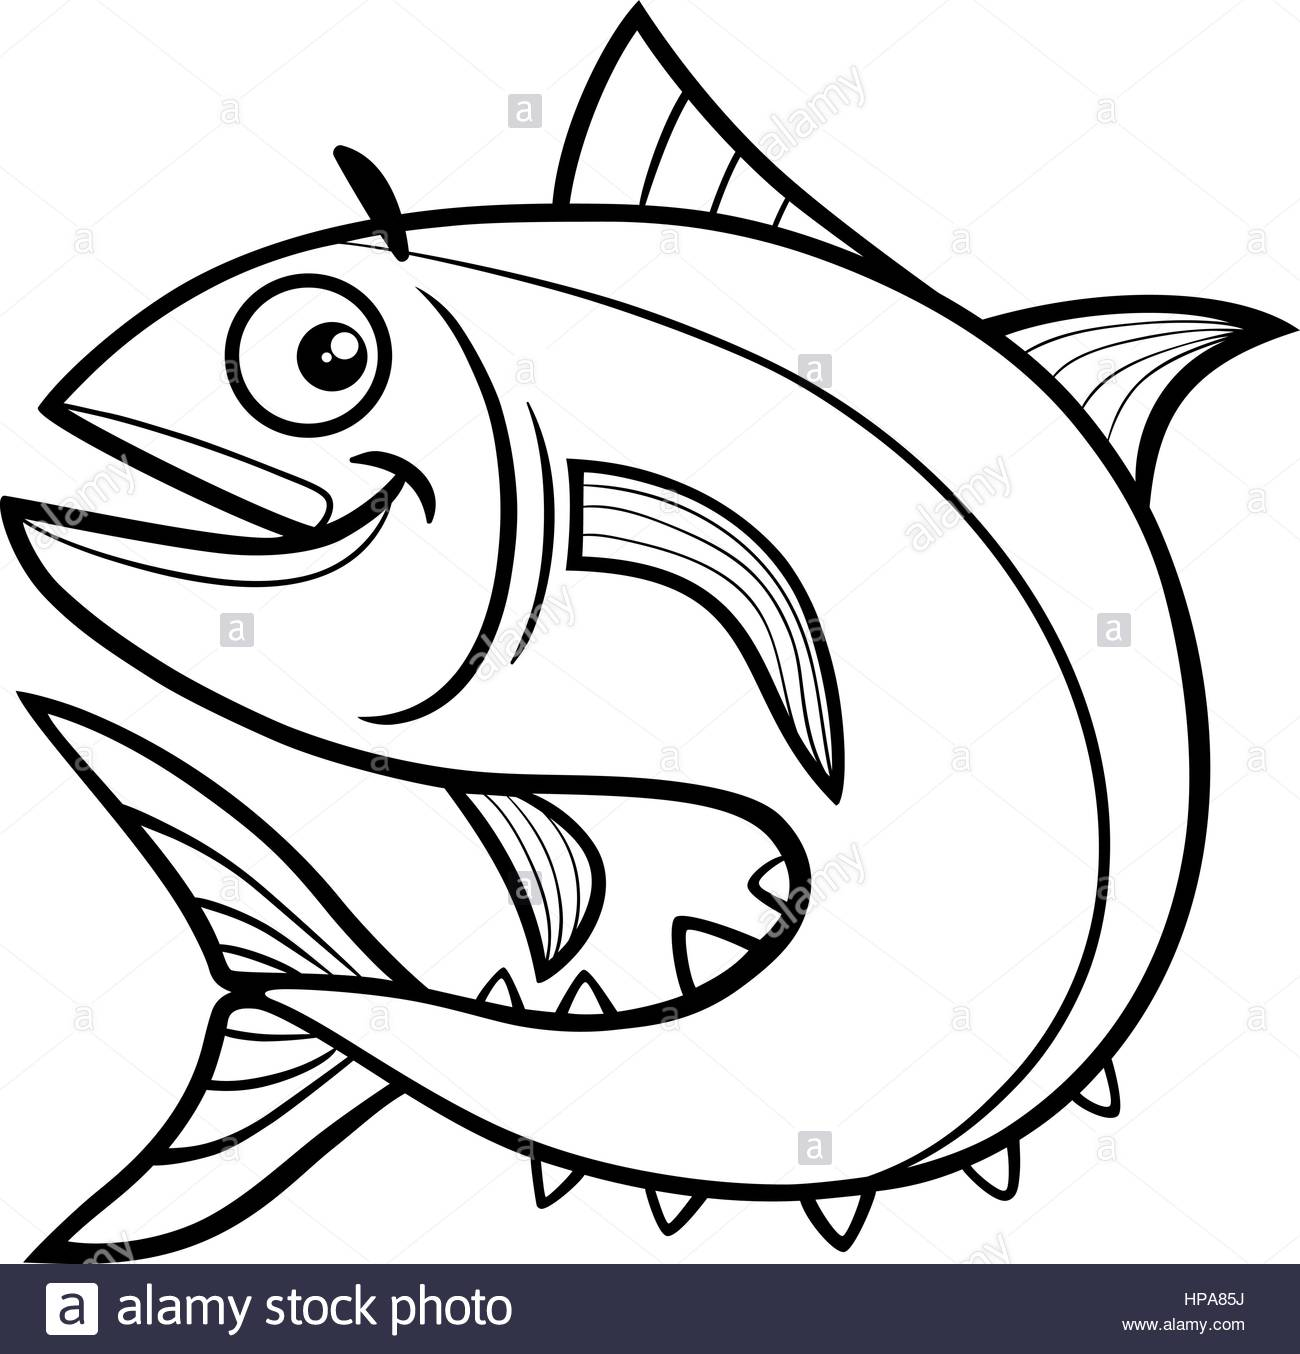 Cartoon Drawing Fish at GetDrawings.com | Free for personal use ... for Dried Fish Clipart Black And White  66pct